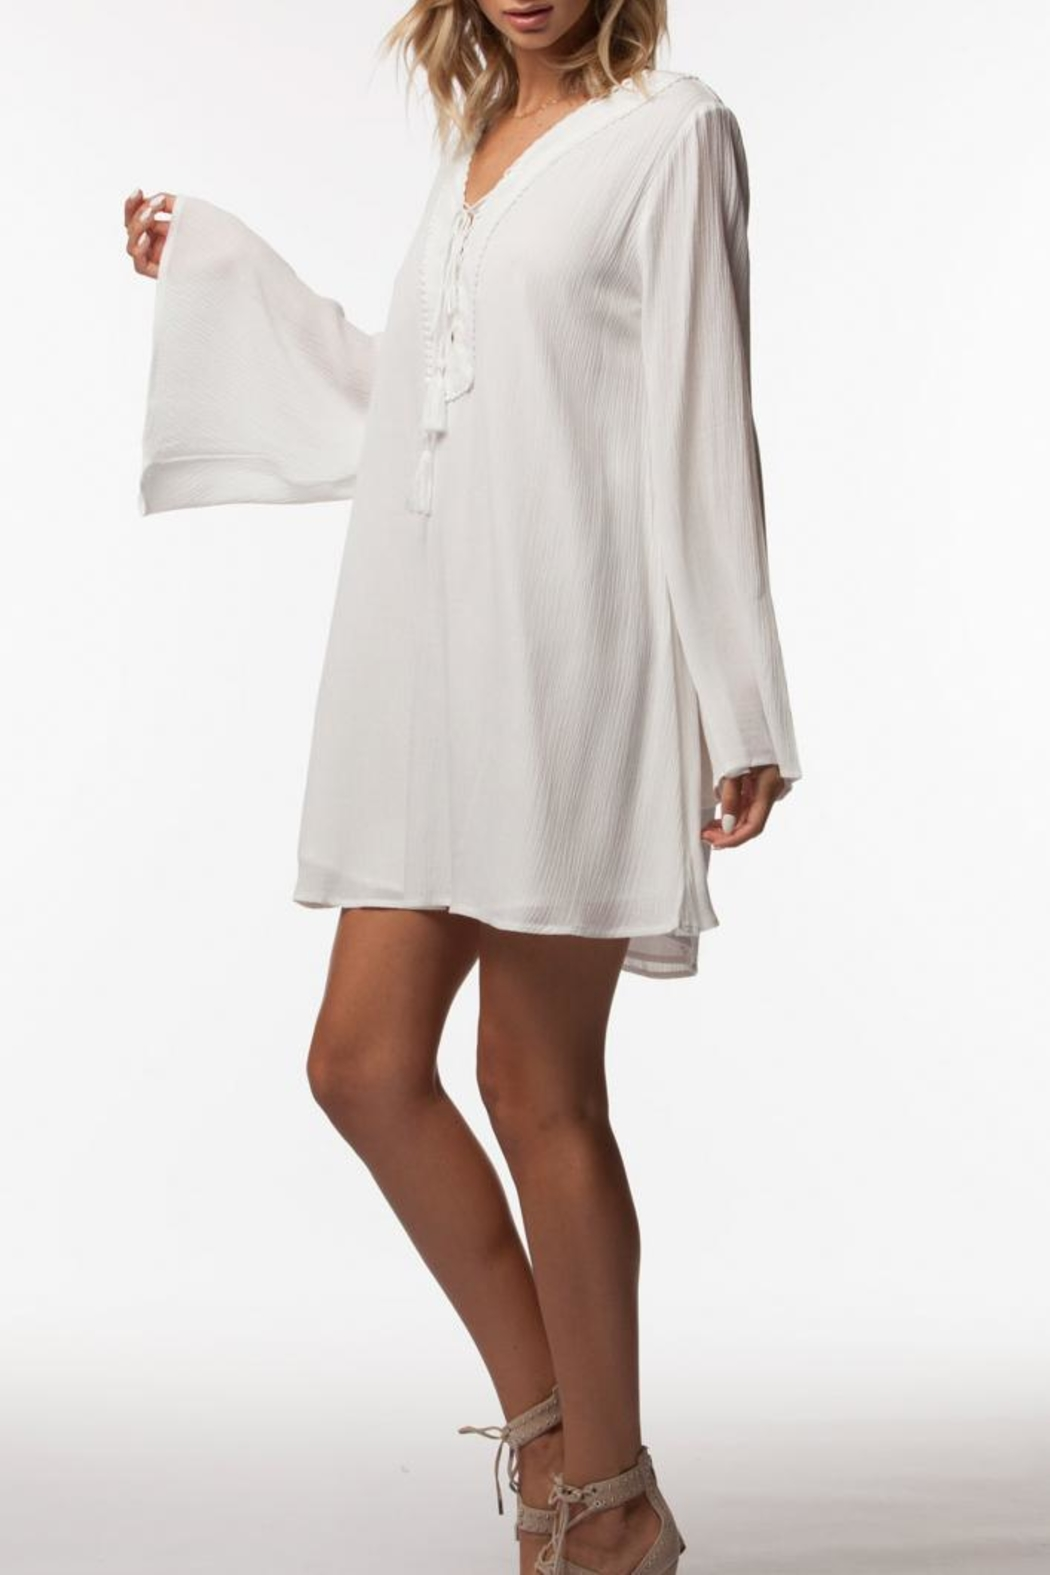 PPLA Clothing Cassius Dress - Side Cropped Image